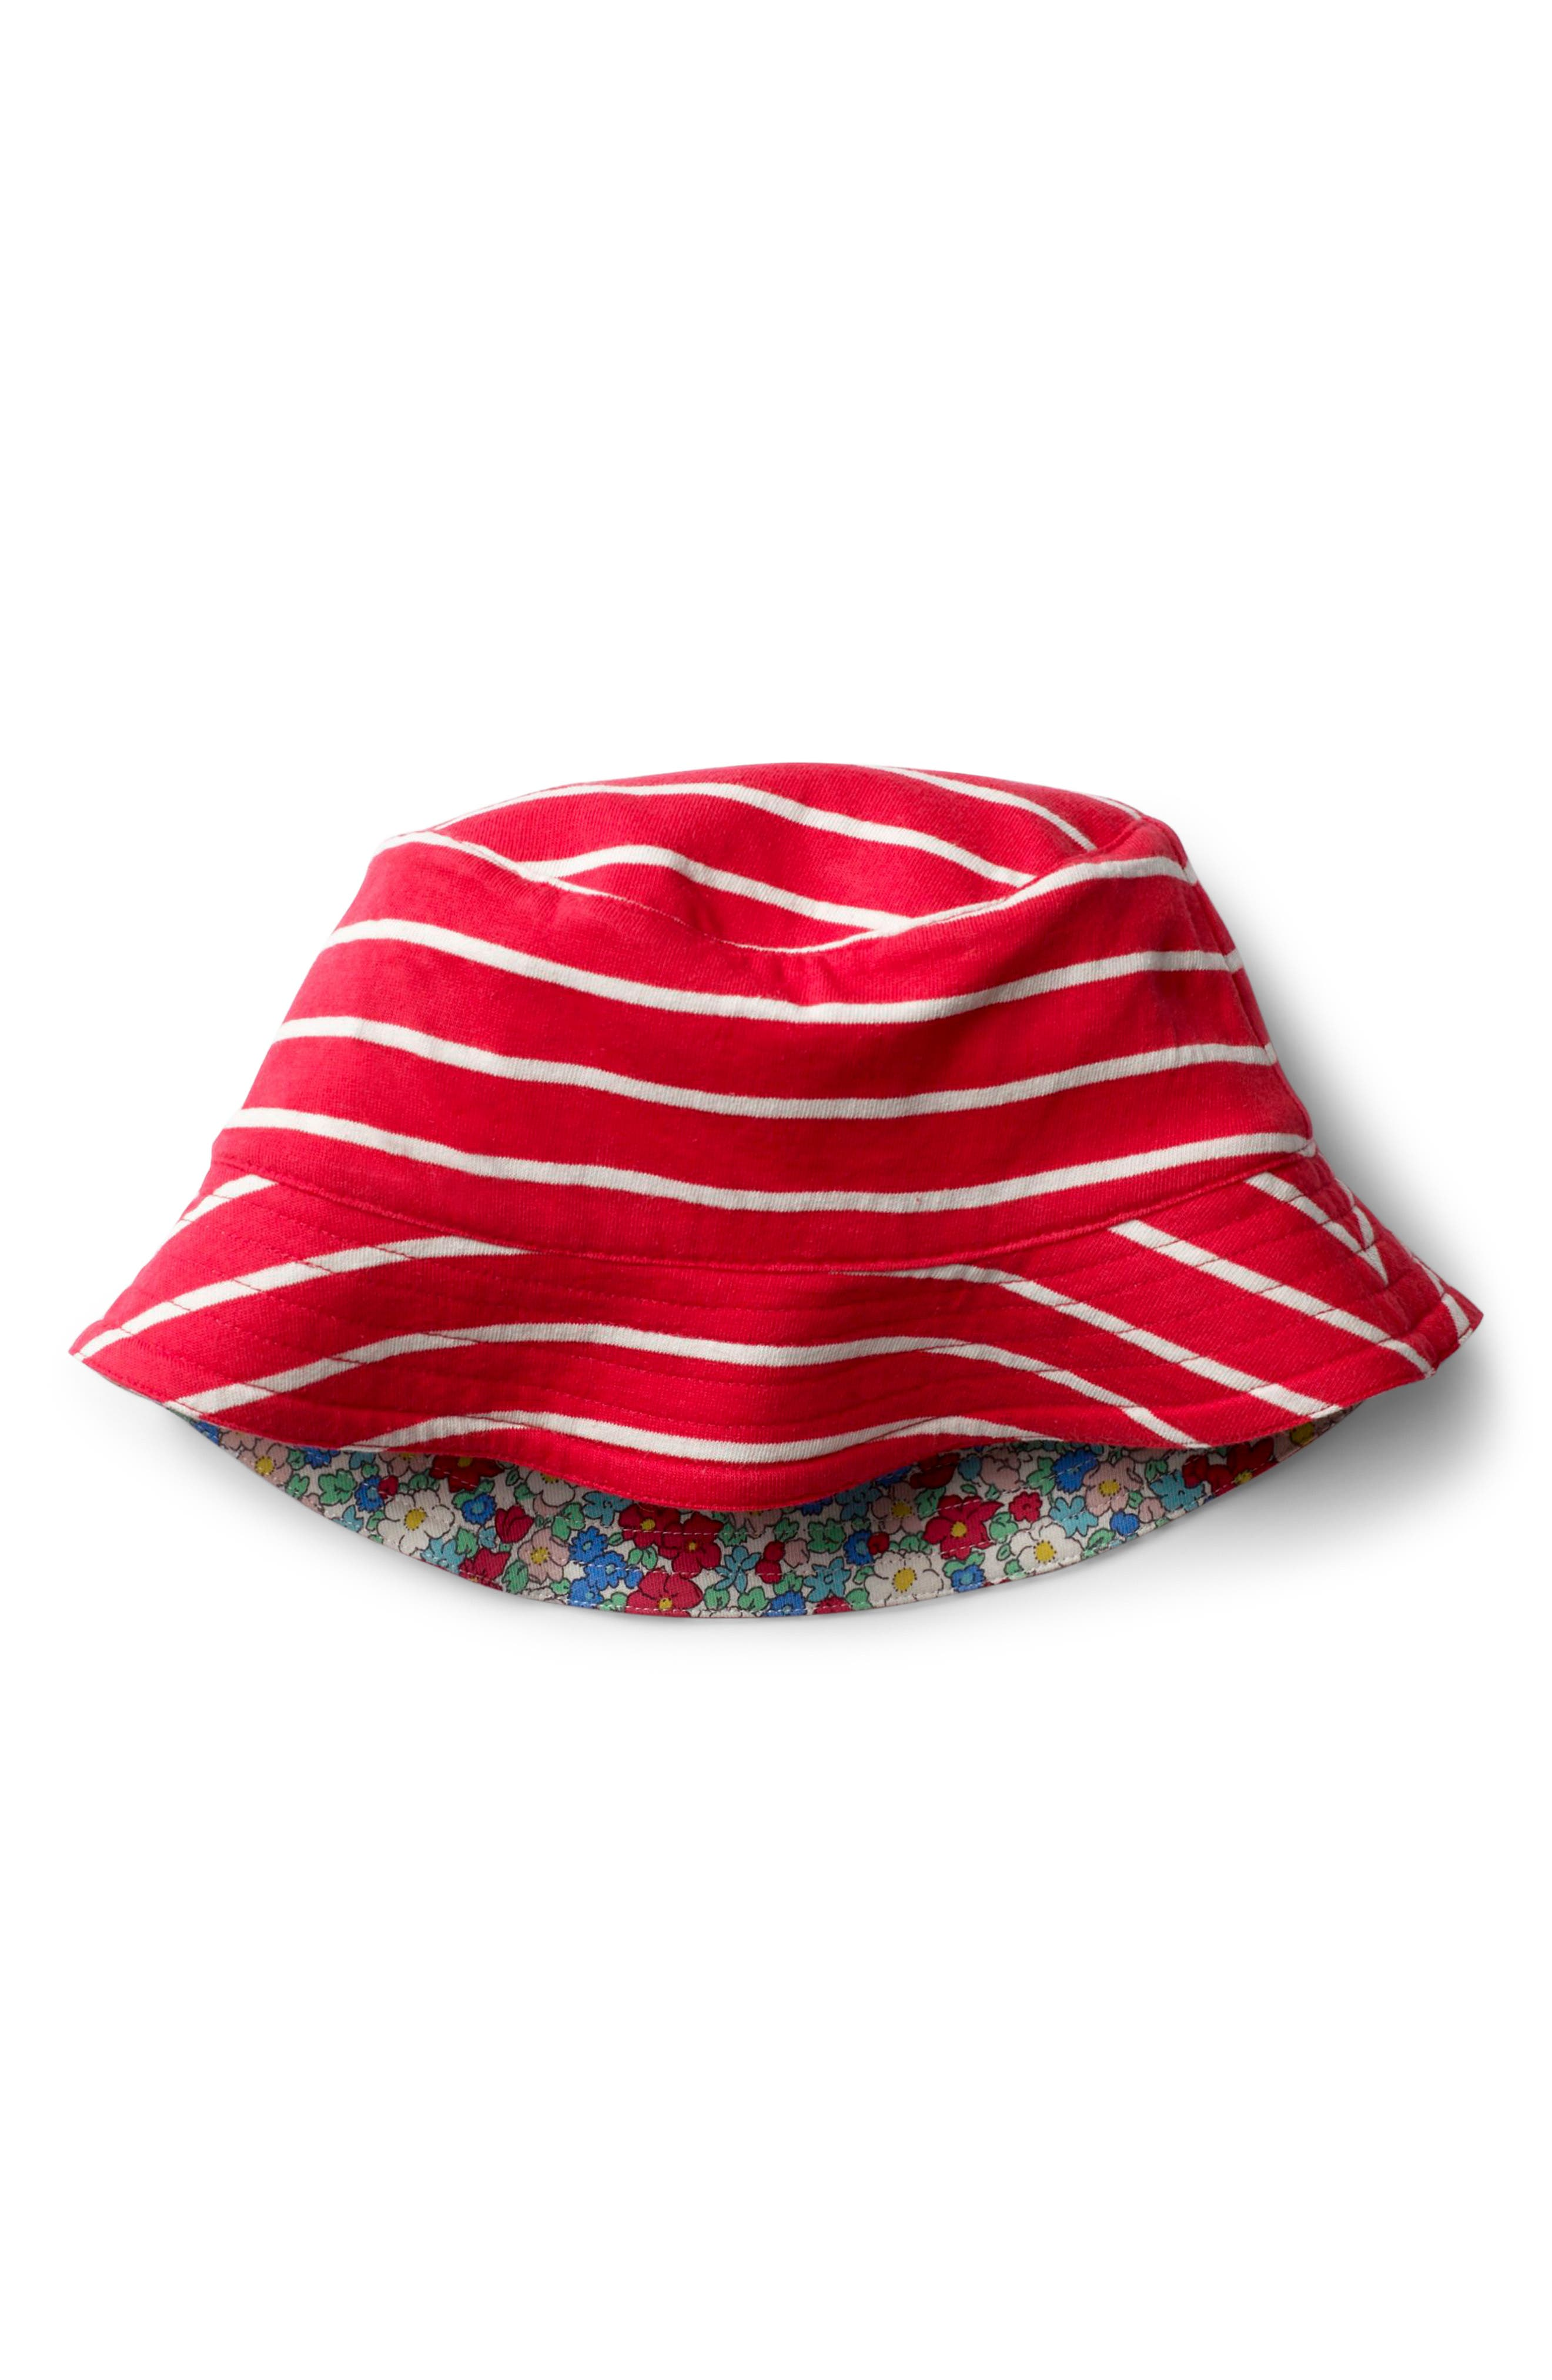 Jersey Reversible Sun Hat,                             Alternate thumbnail 2, color,                             Strawberry Split Pink Floral